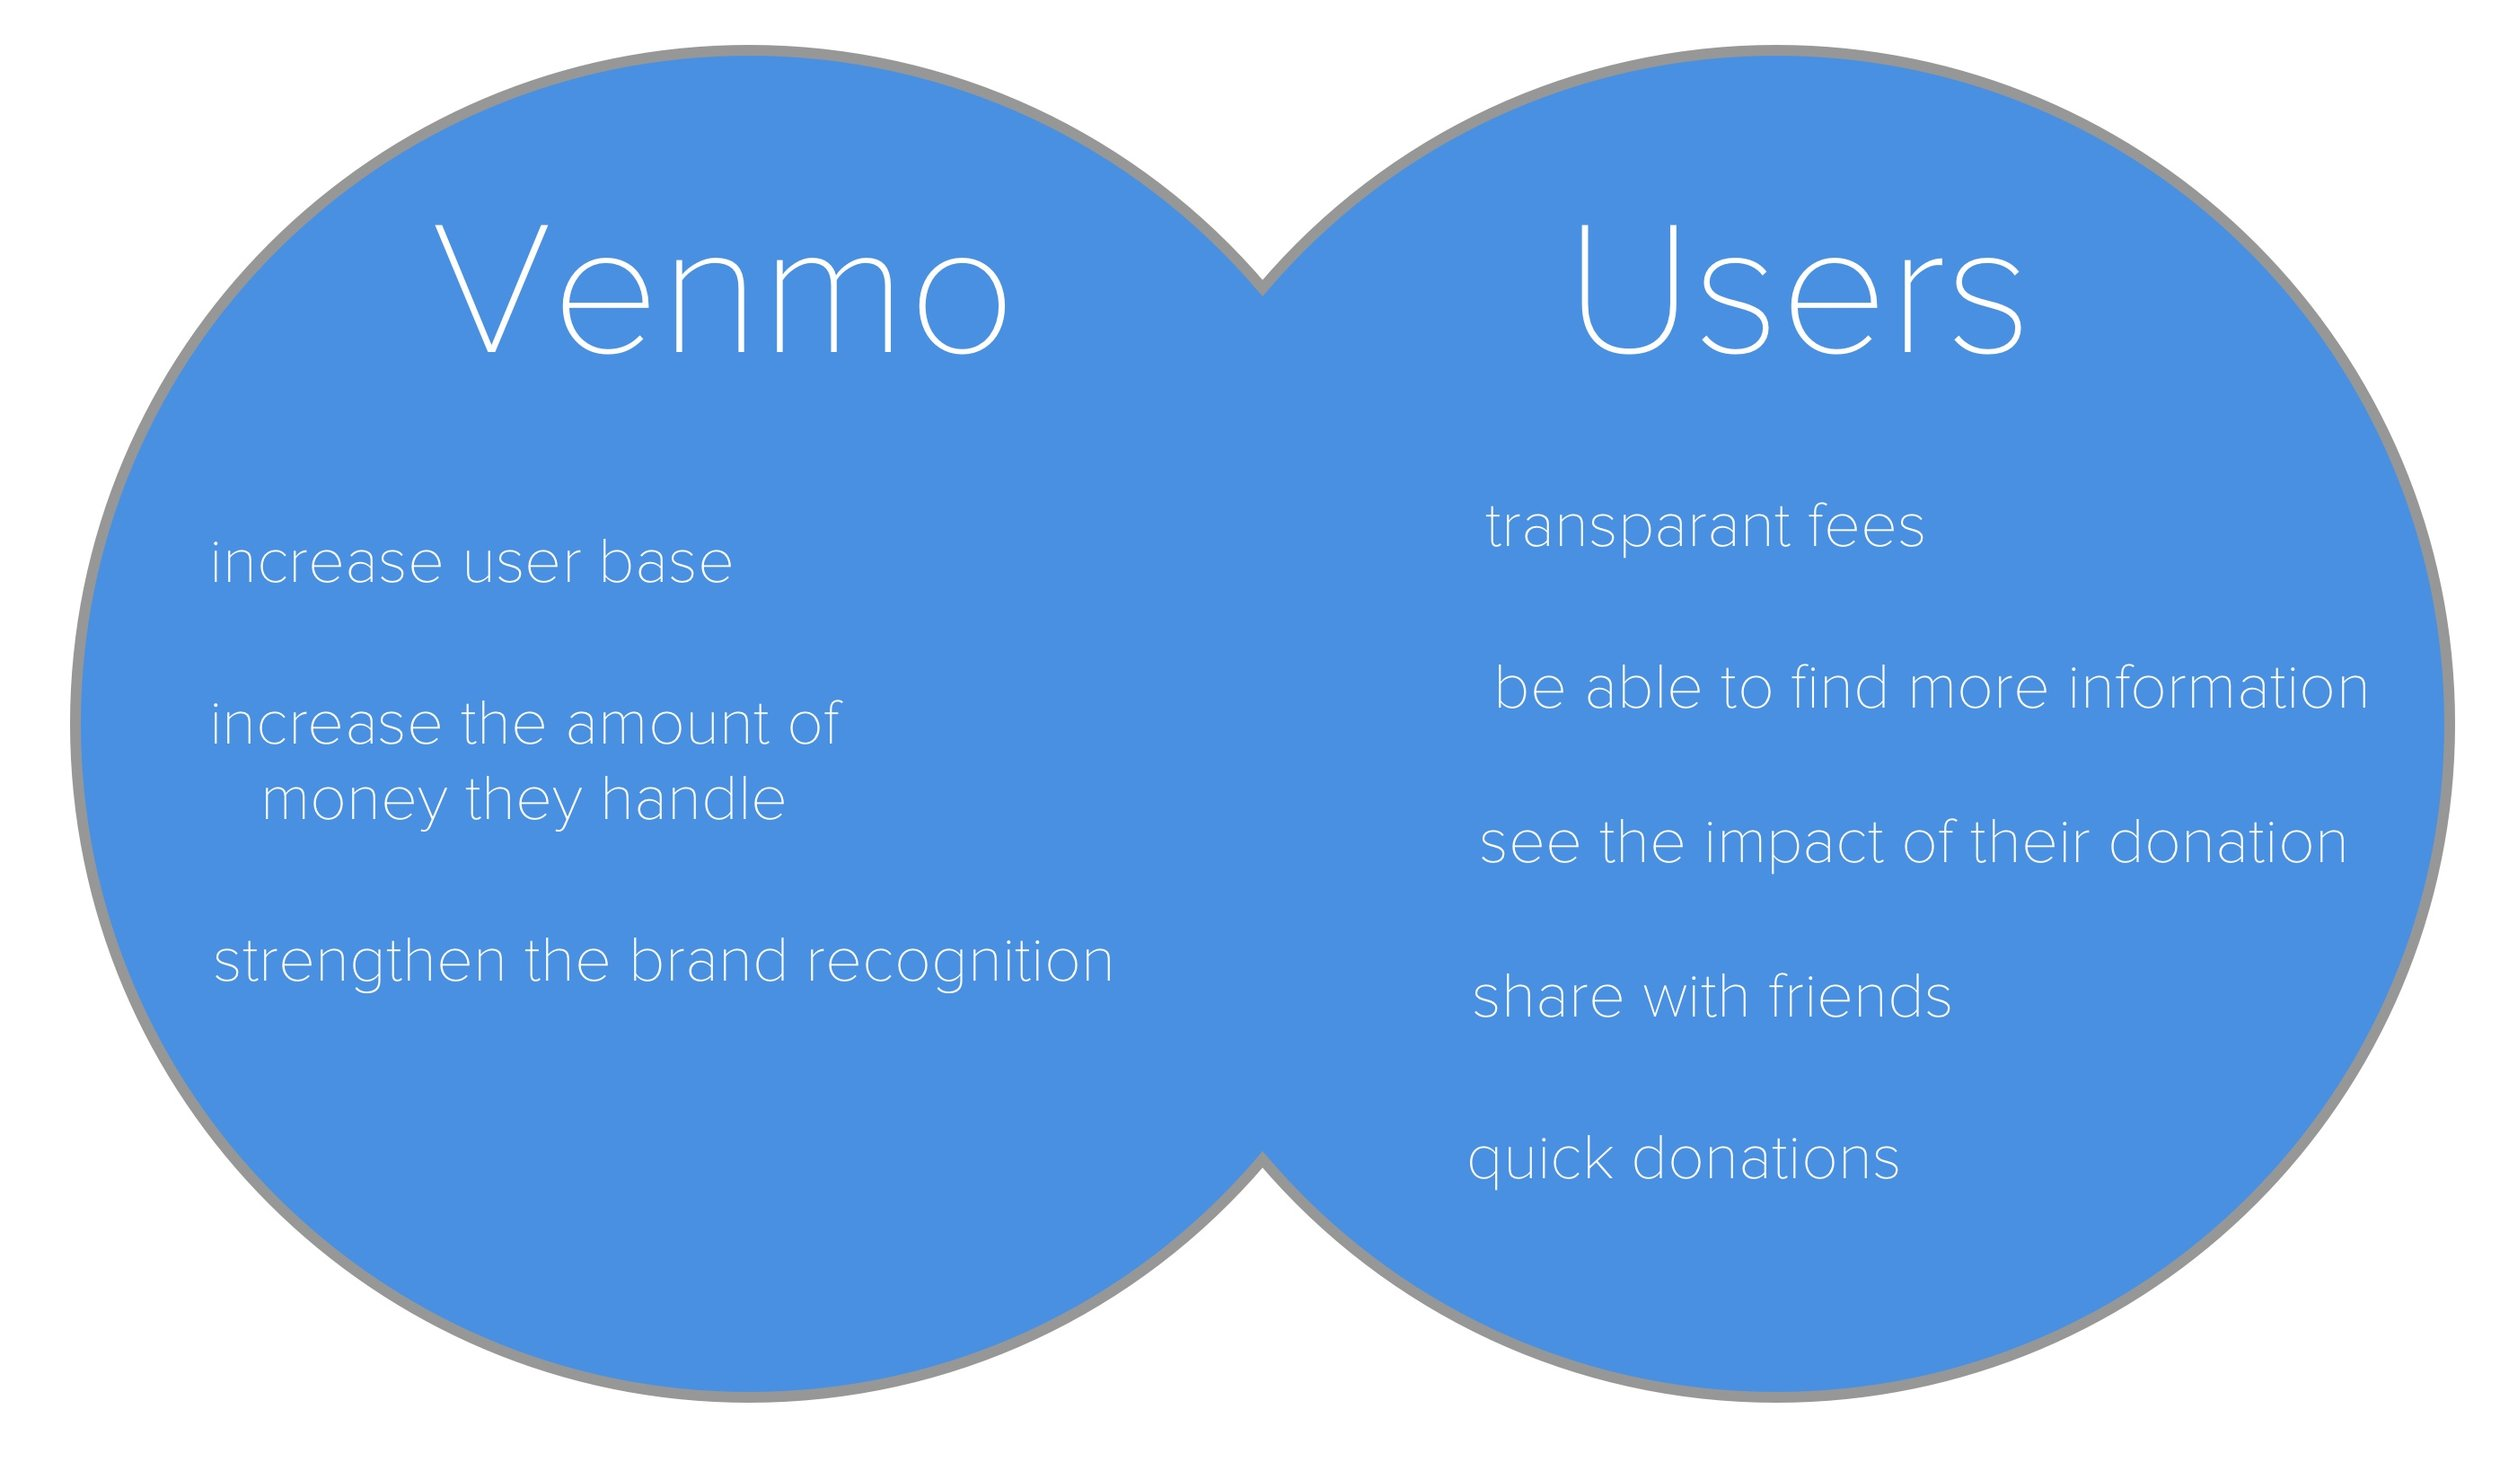 venmo and users.jpg